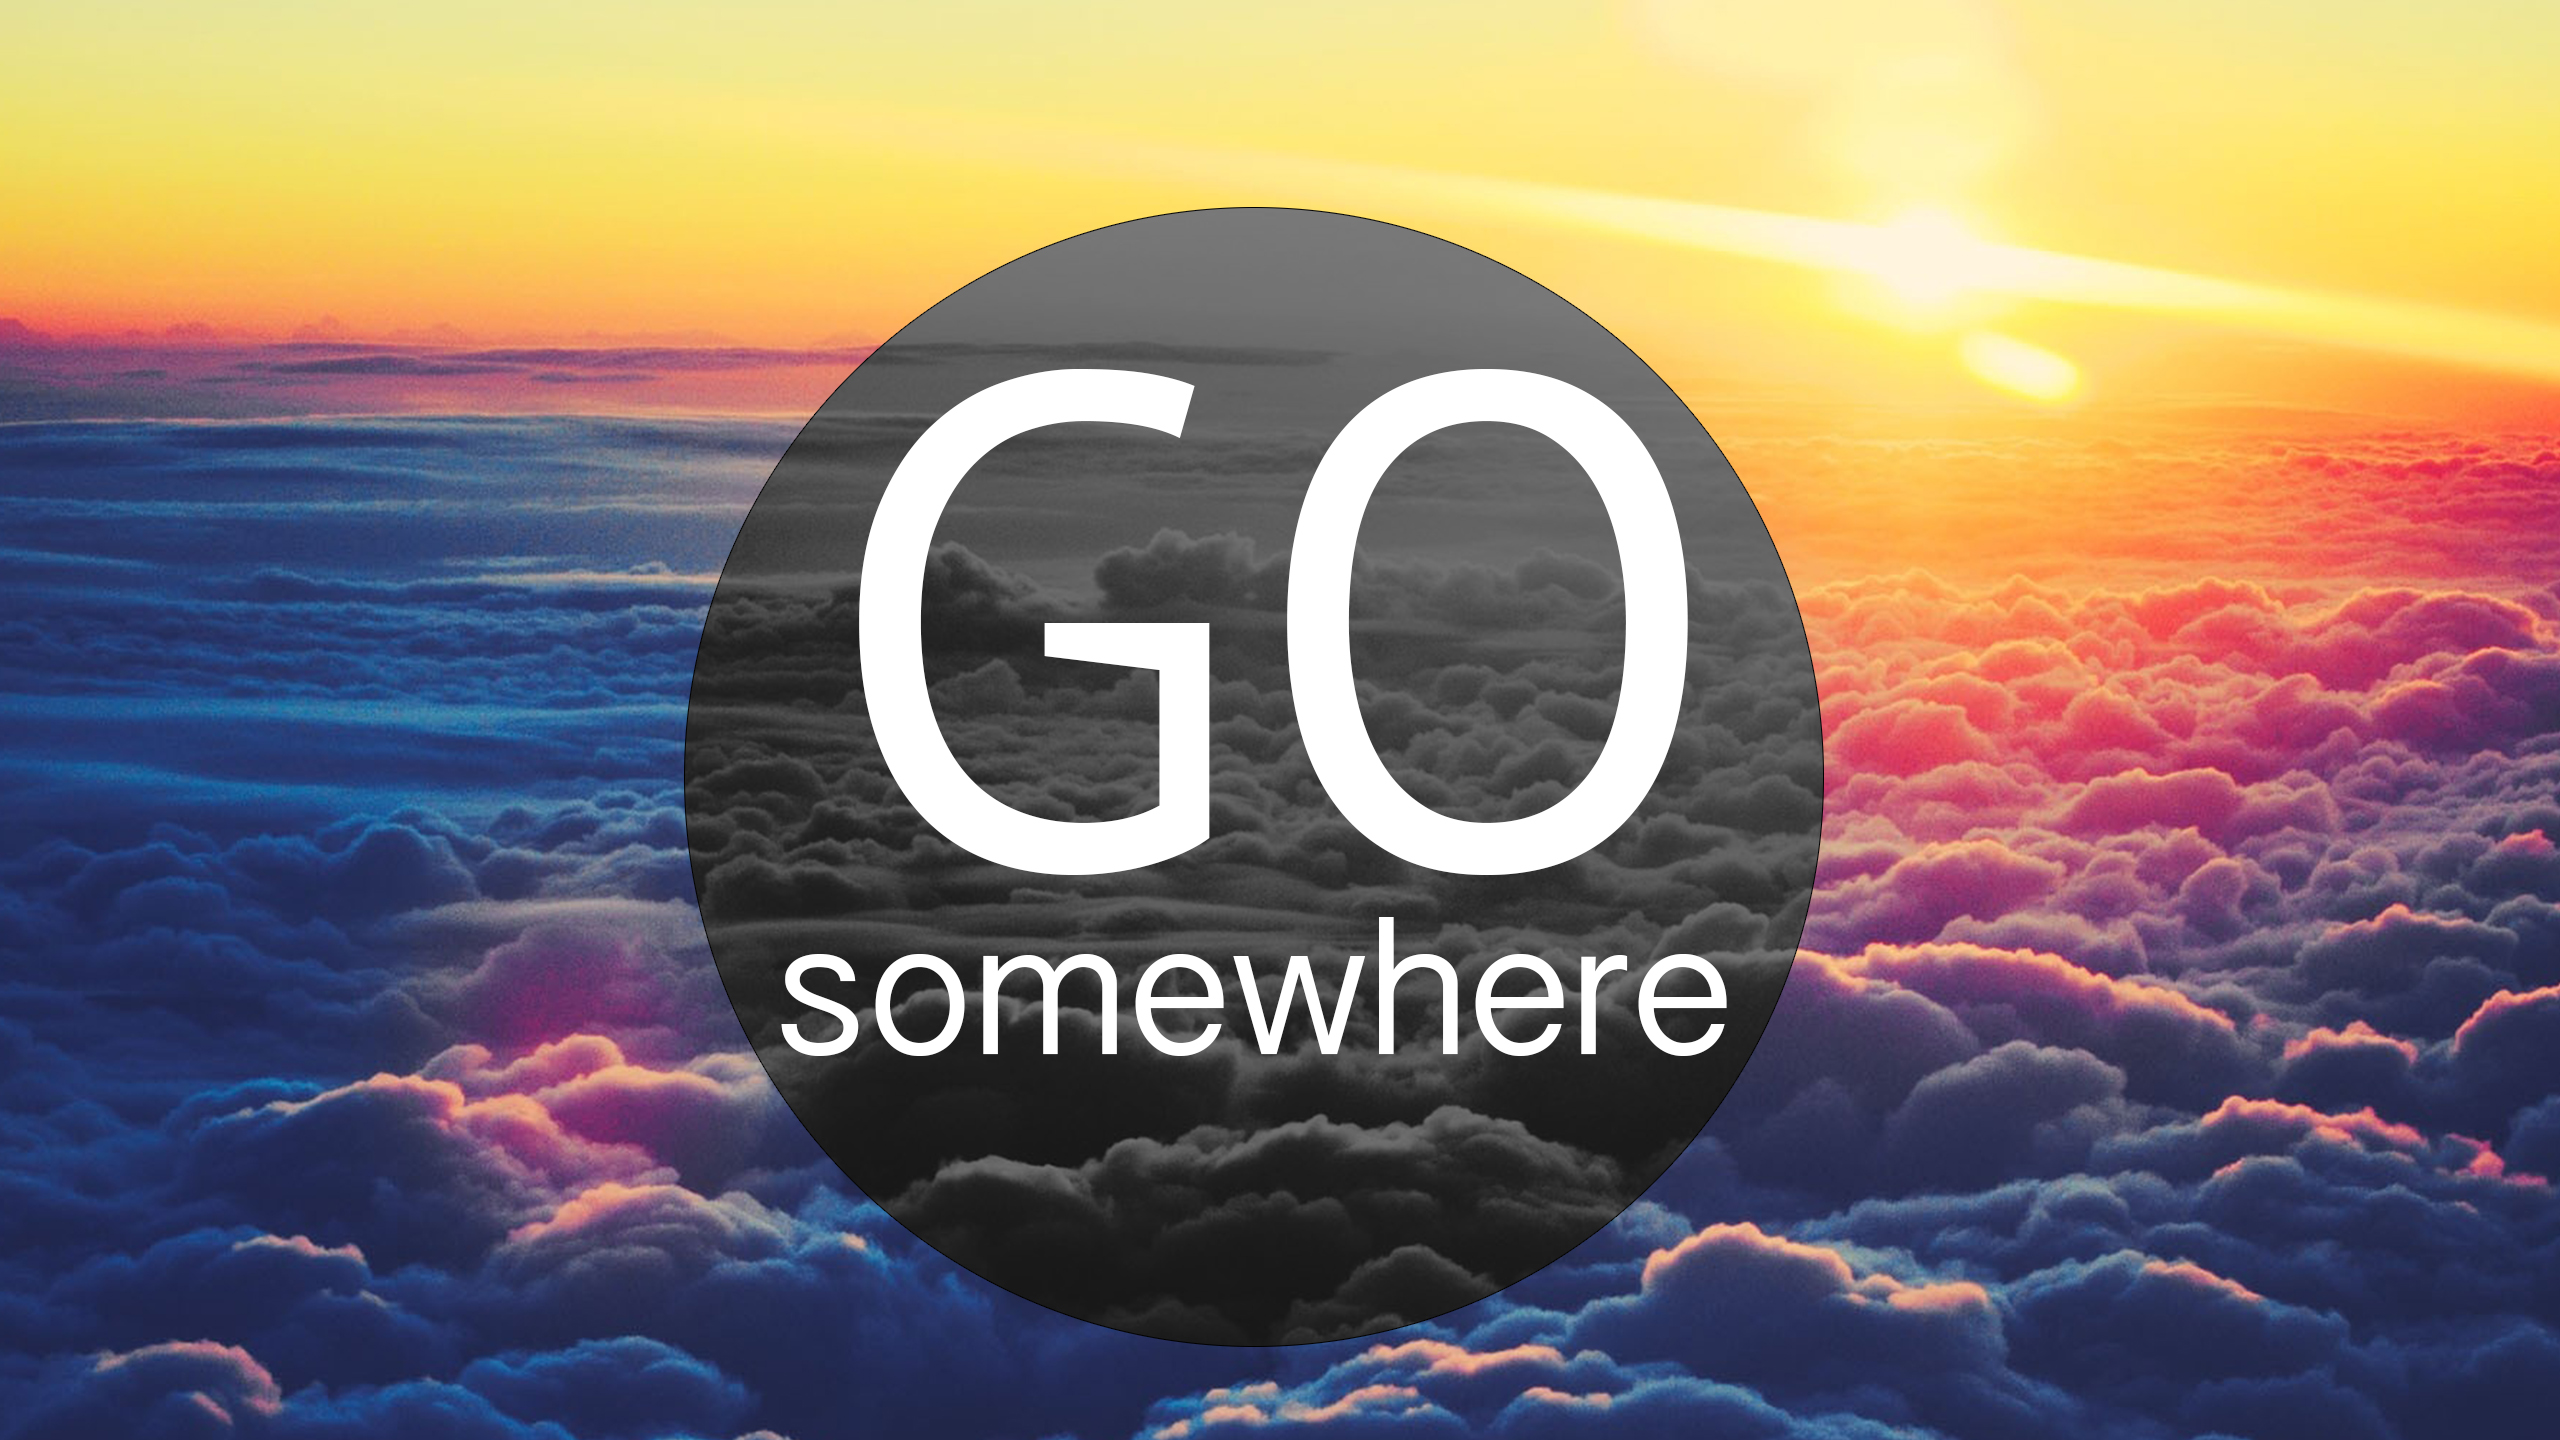 Go.Somewhere HD Wallpaper by vTahLick